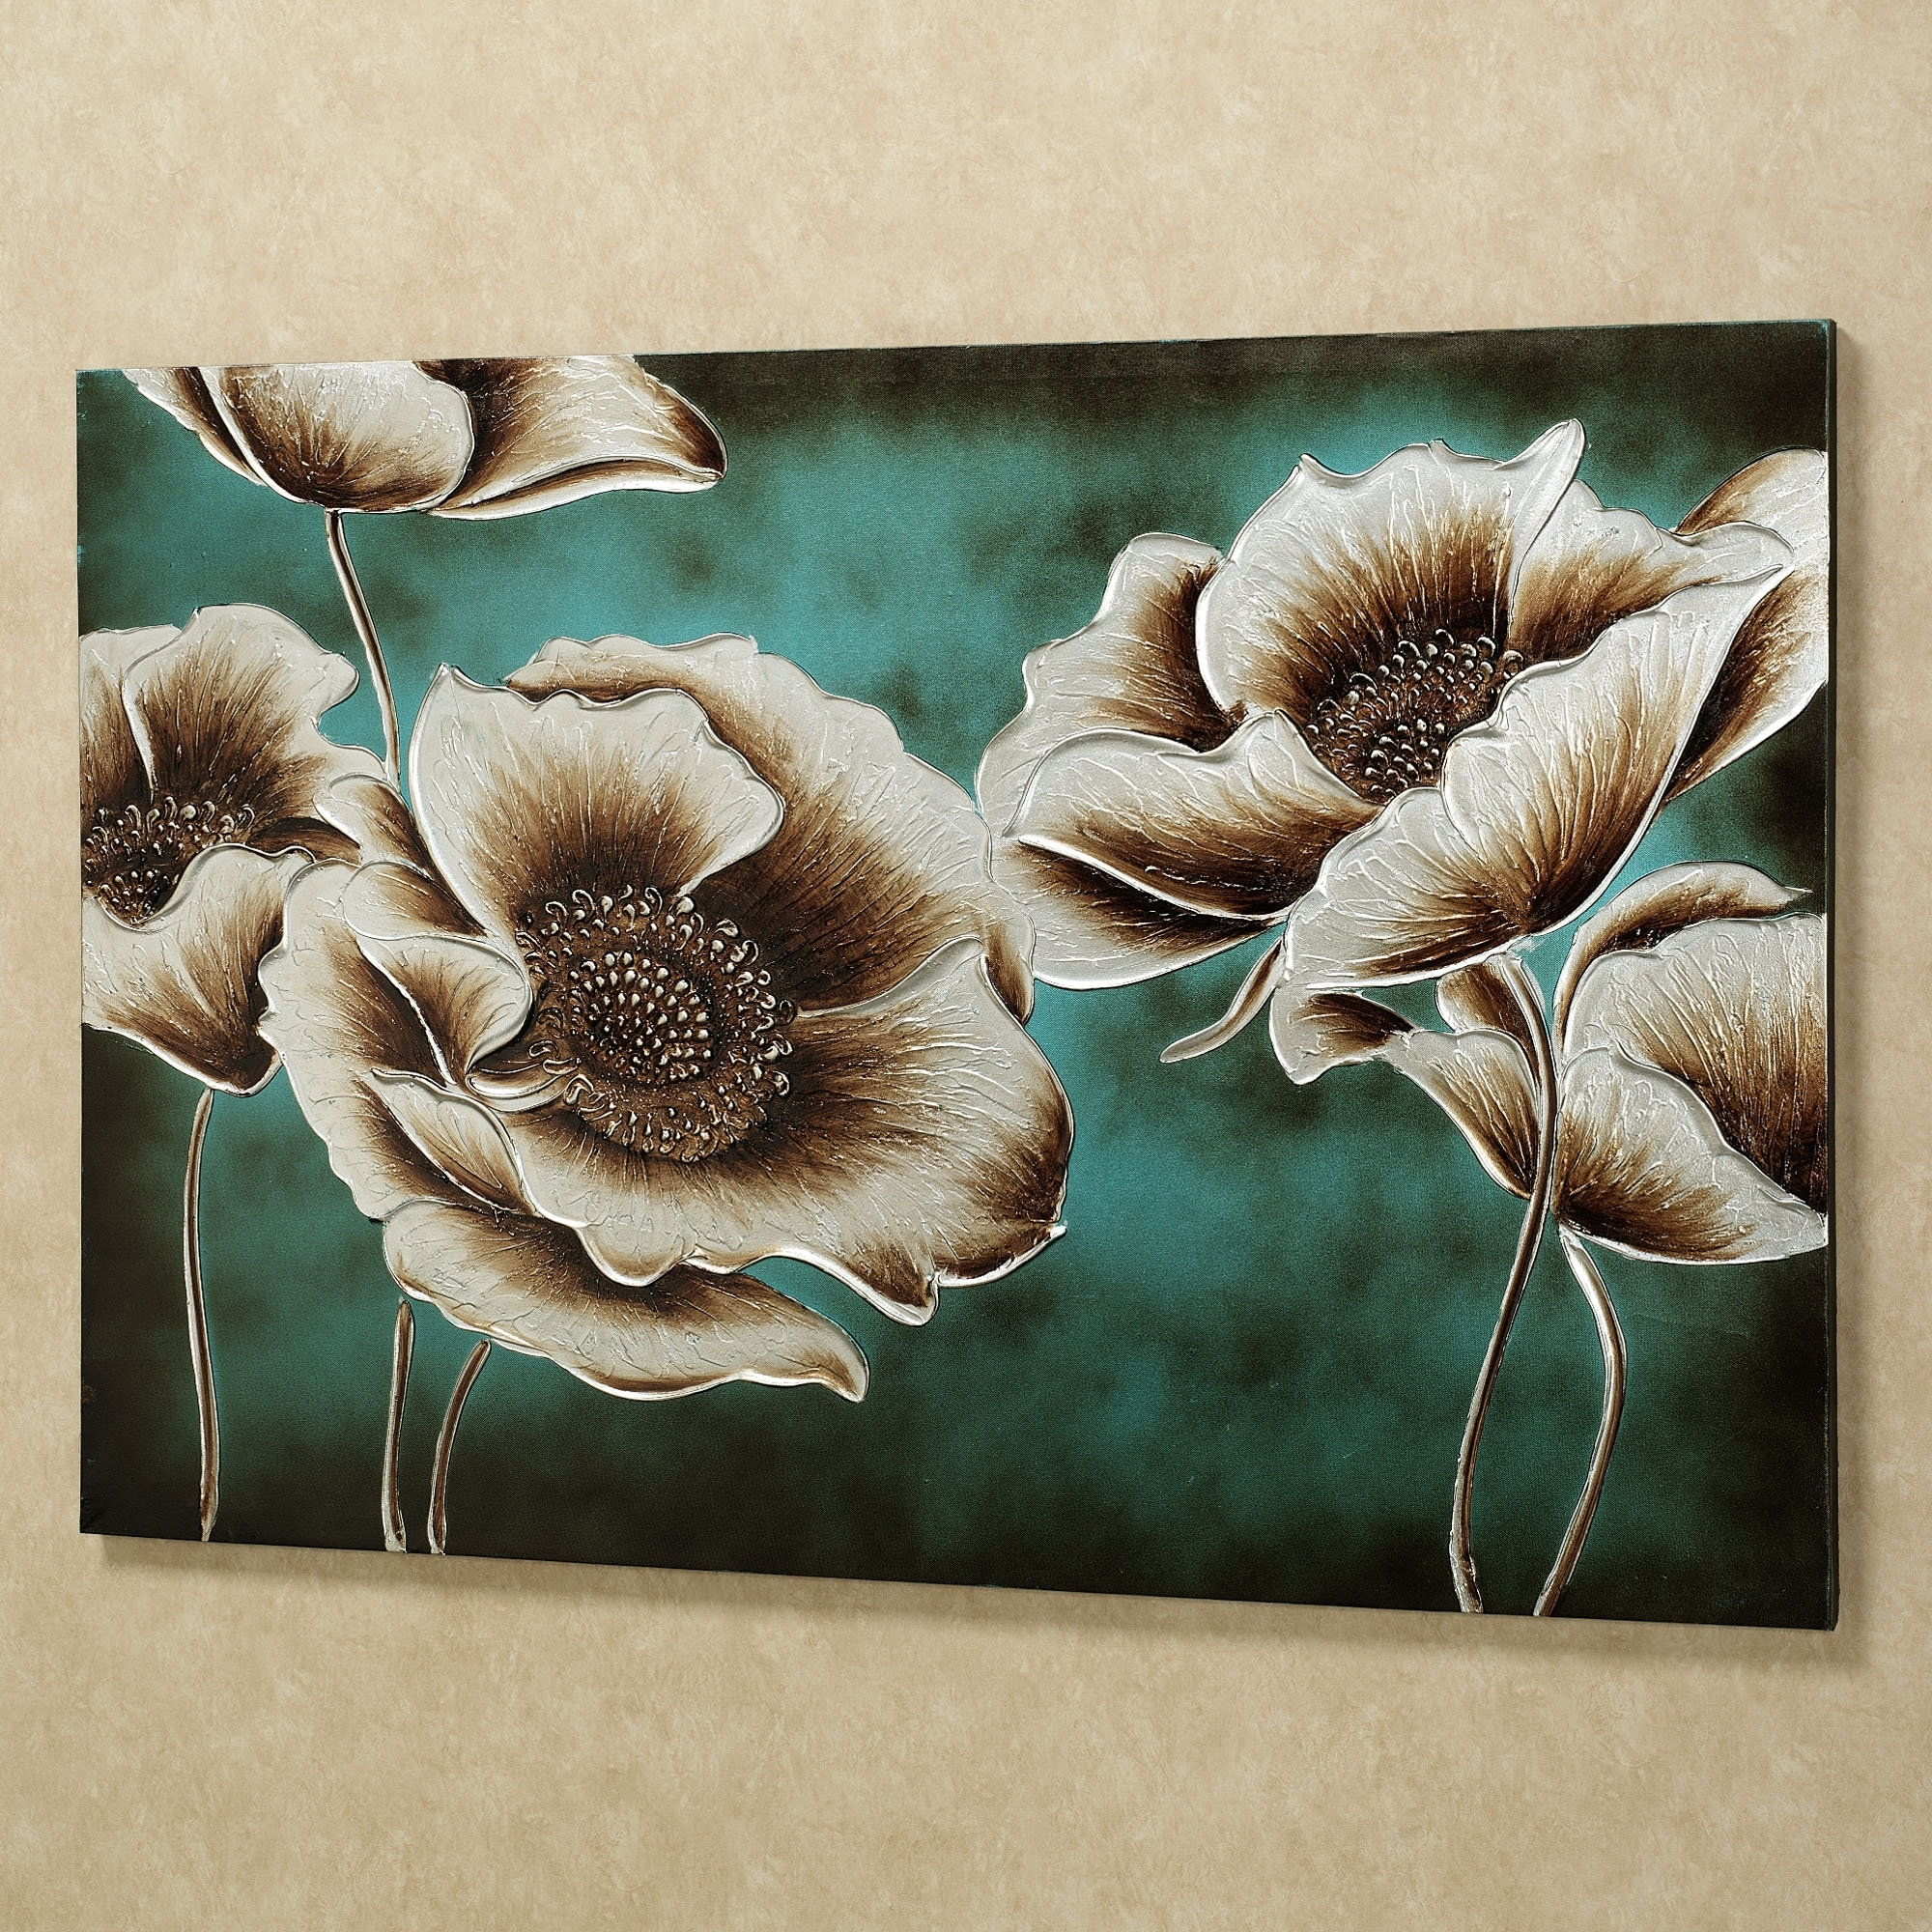 Preferred Jardin De Pavot Poppy Flower Canvas Wall Art (View 13 of 15)